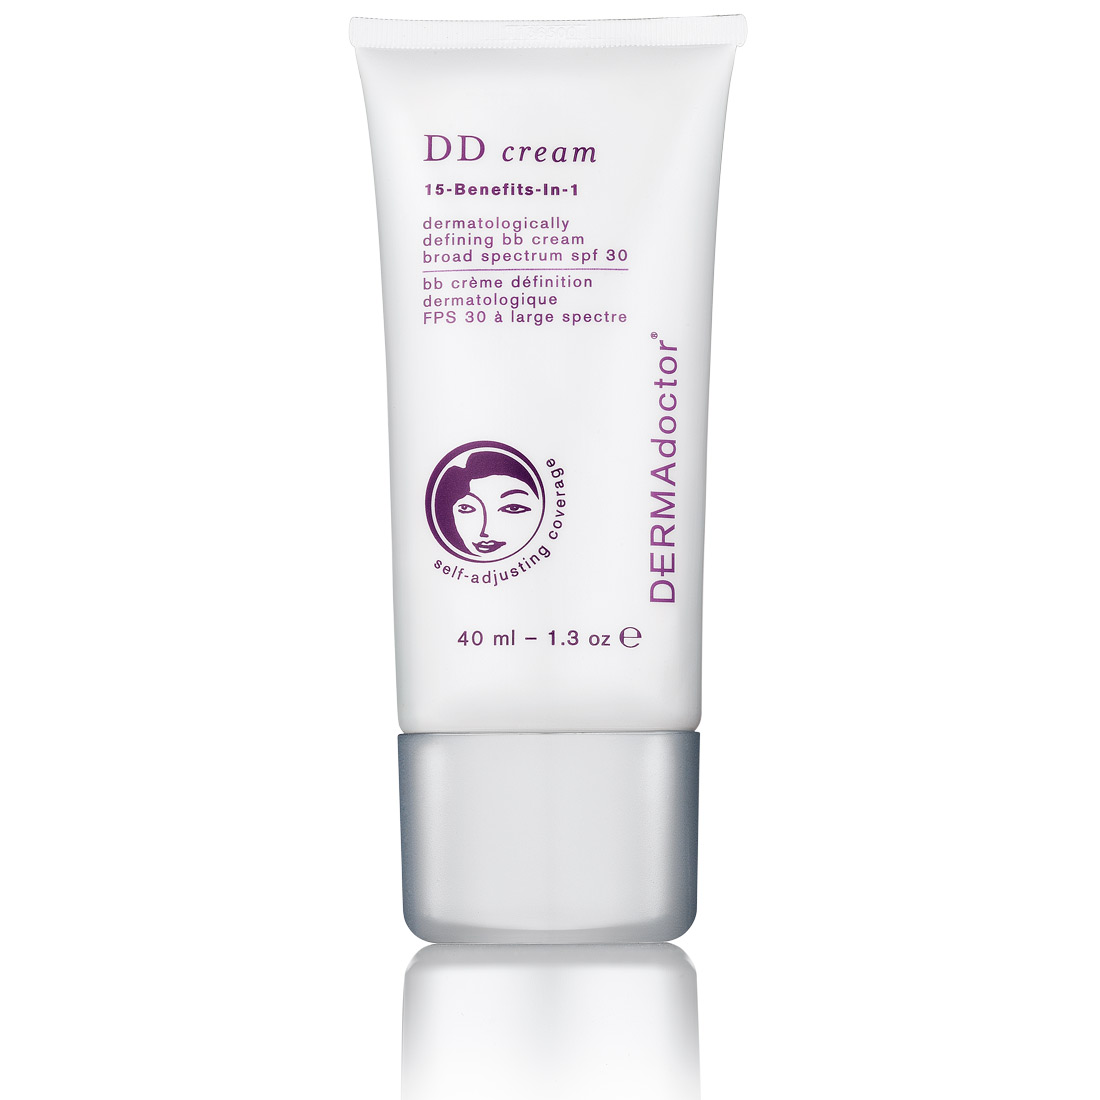 DD Cream 15-Benefits-In-1 dermatologists' dream bb cream